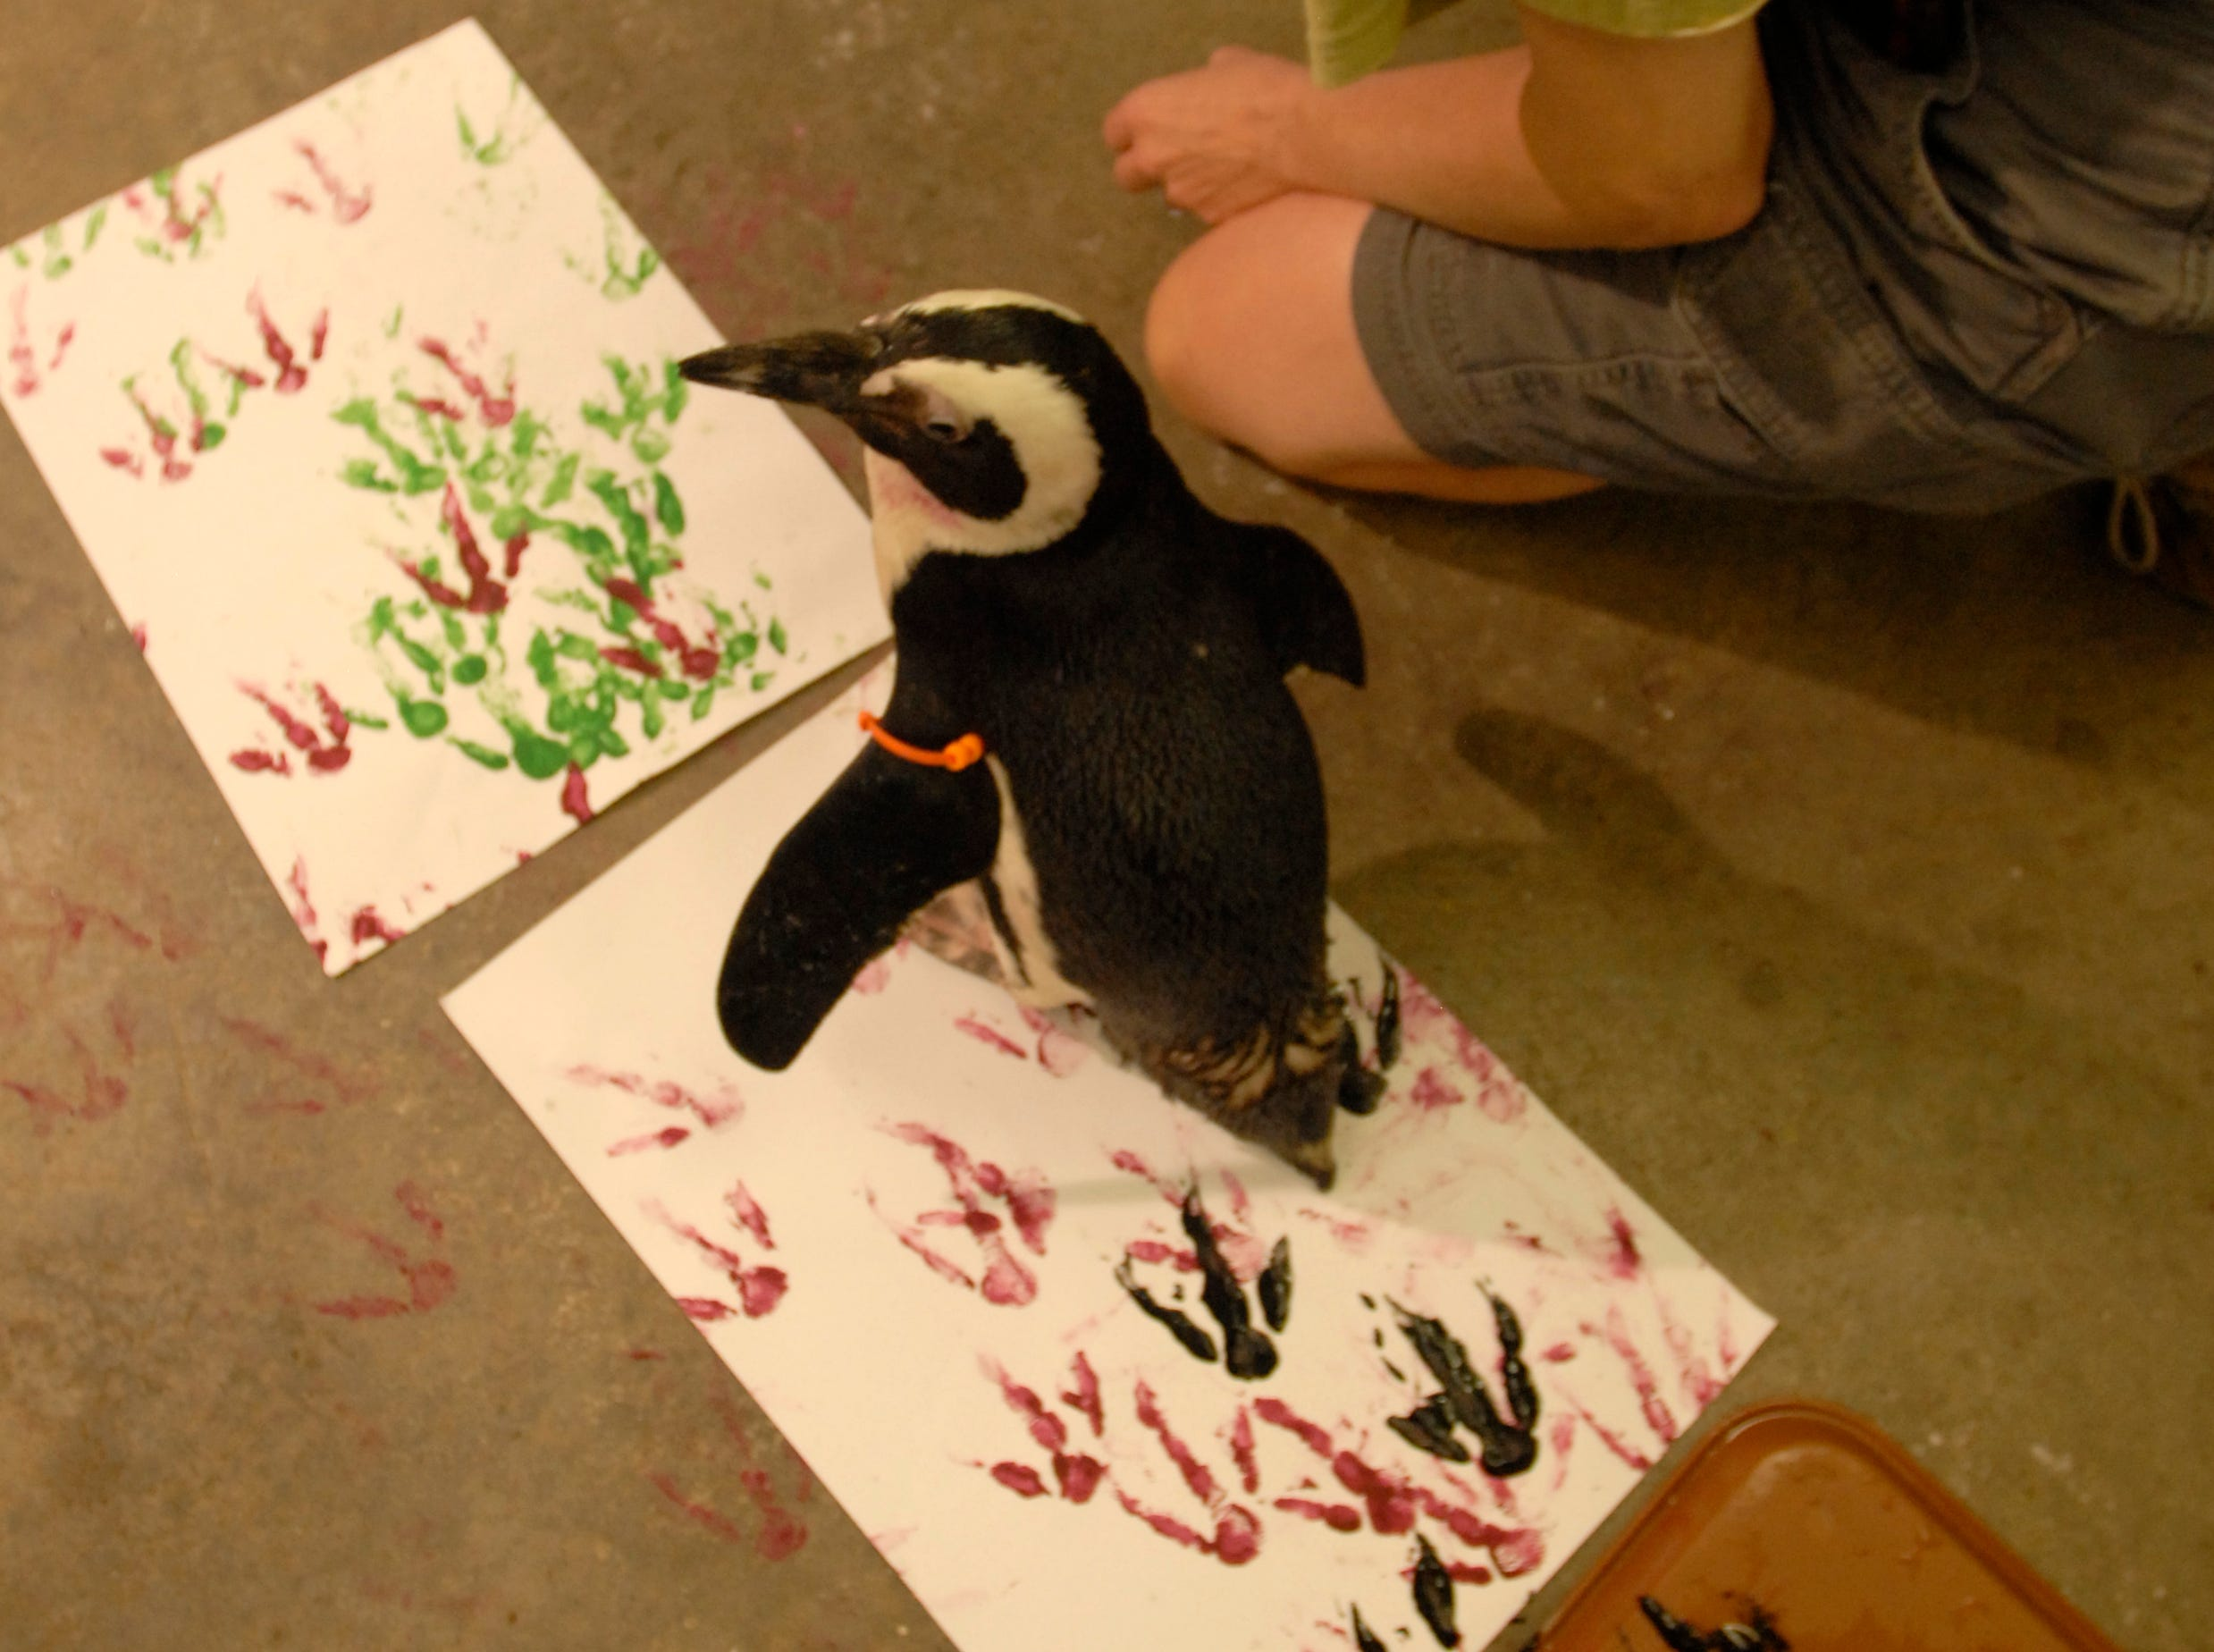 Tammy Walling, assistant curator of birds, looks on as a penguin named Jello creates a painting Wednesday at the Knoxville Zoo.